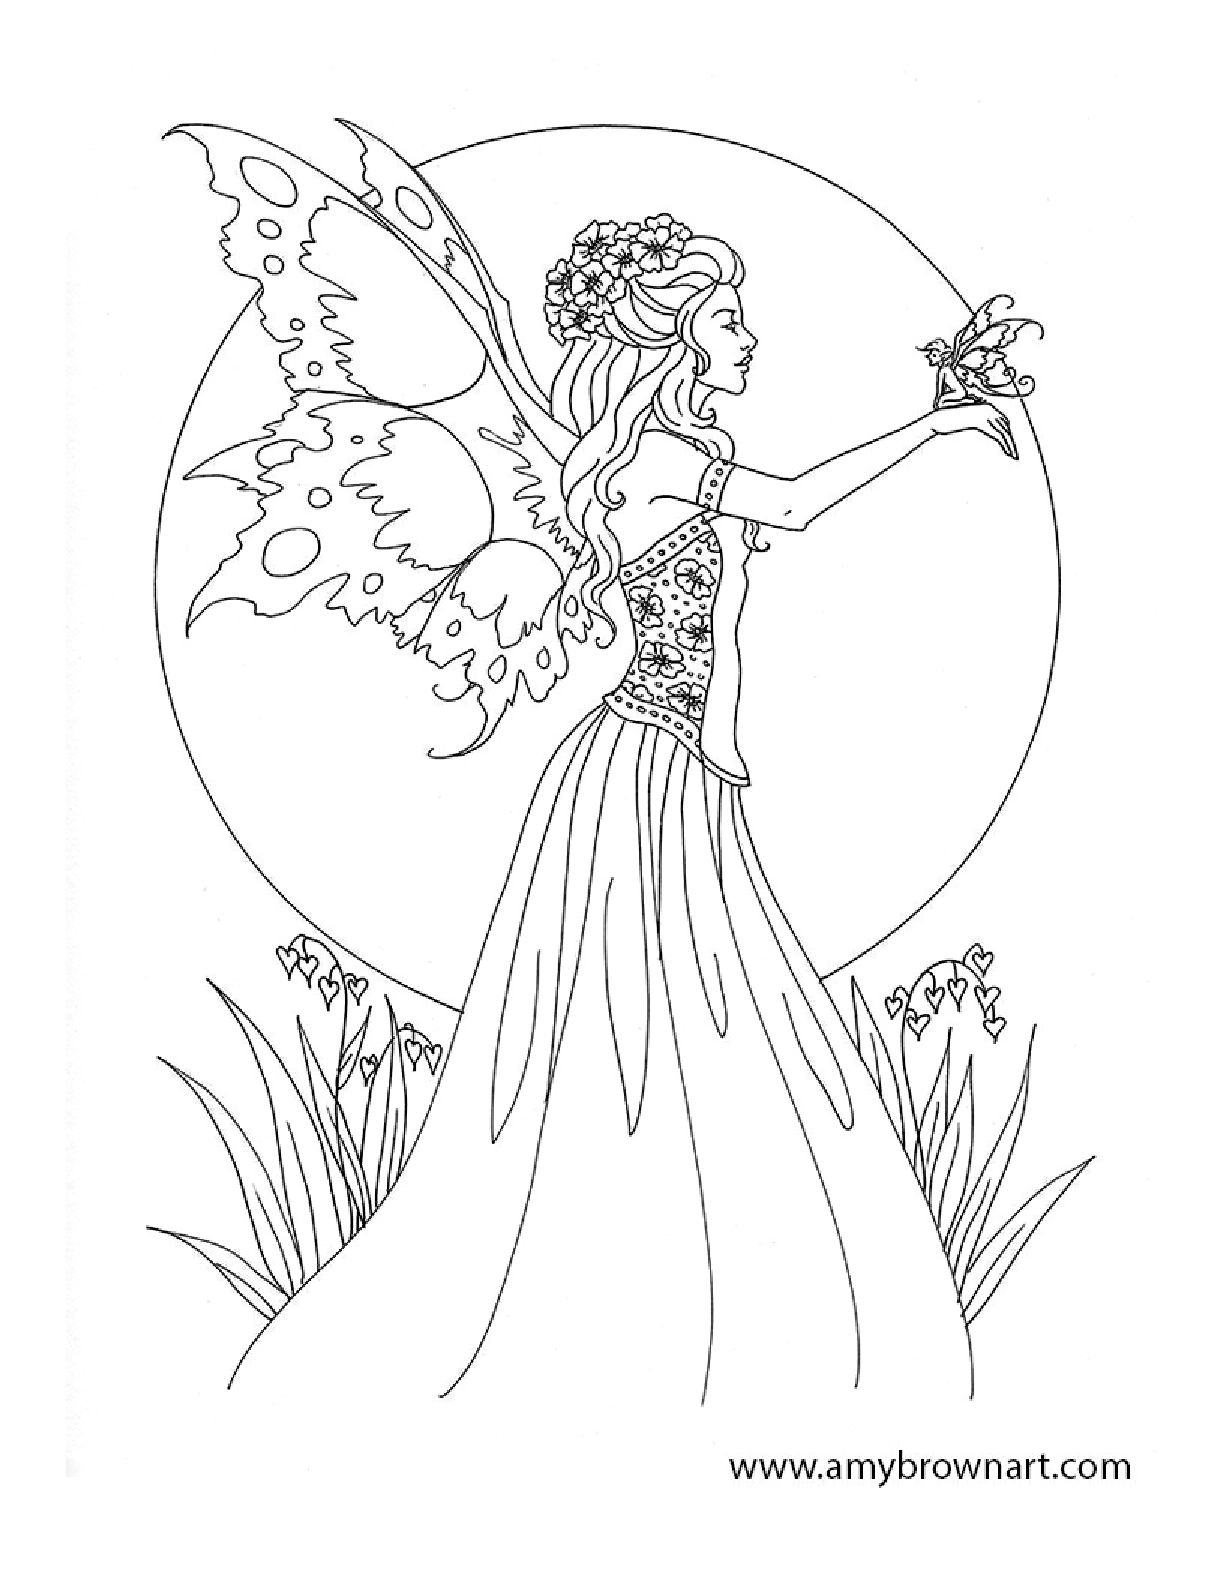 Free Amy Brown Fairy Coloring Pages | Fairie And Elf Coloring Pages - Free Printable Coloring Pages For Adults Dark Fairies